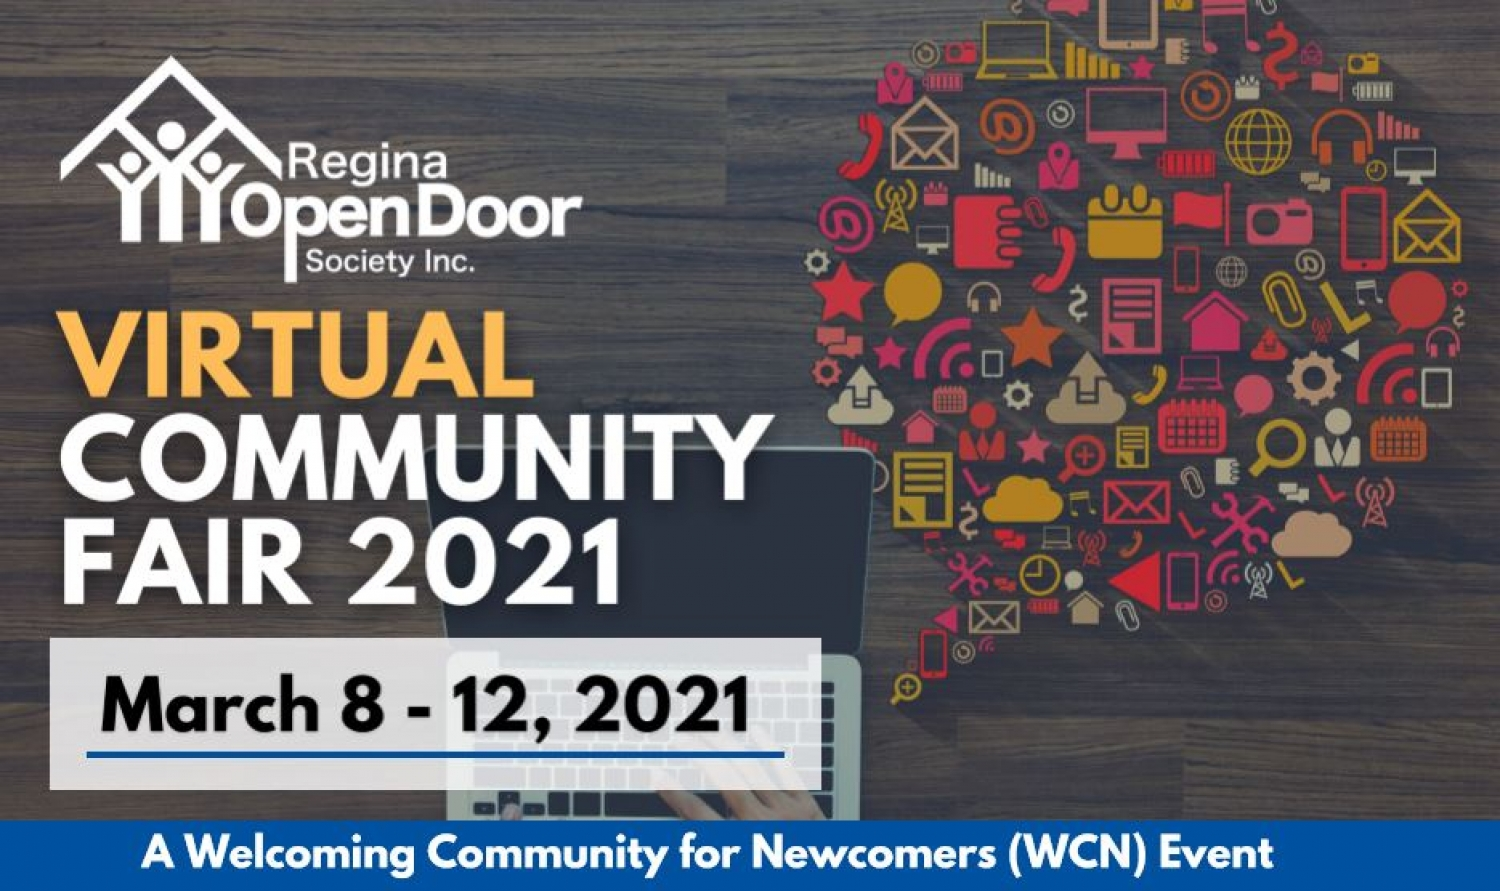 Online Community Fair for Newcomers - Starting March 8th